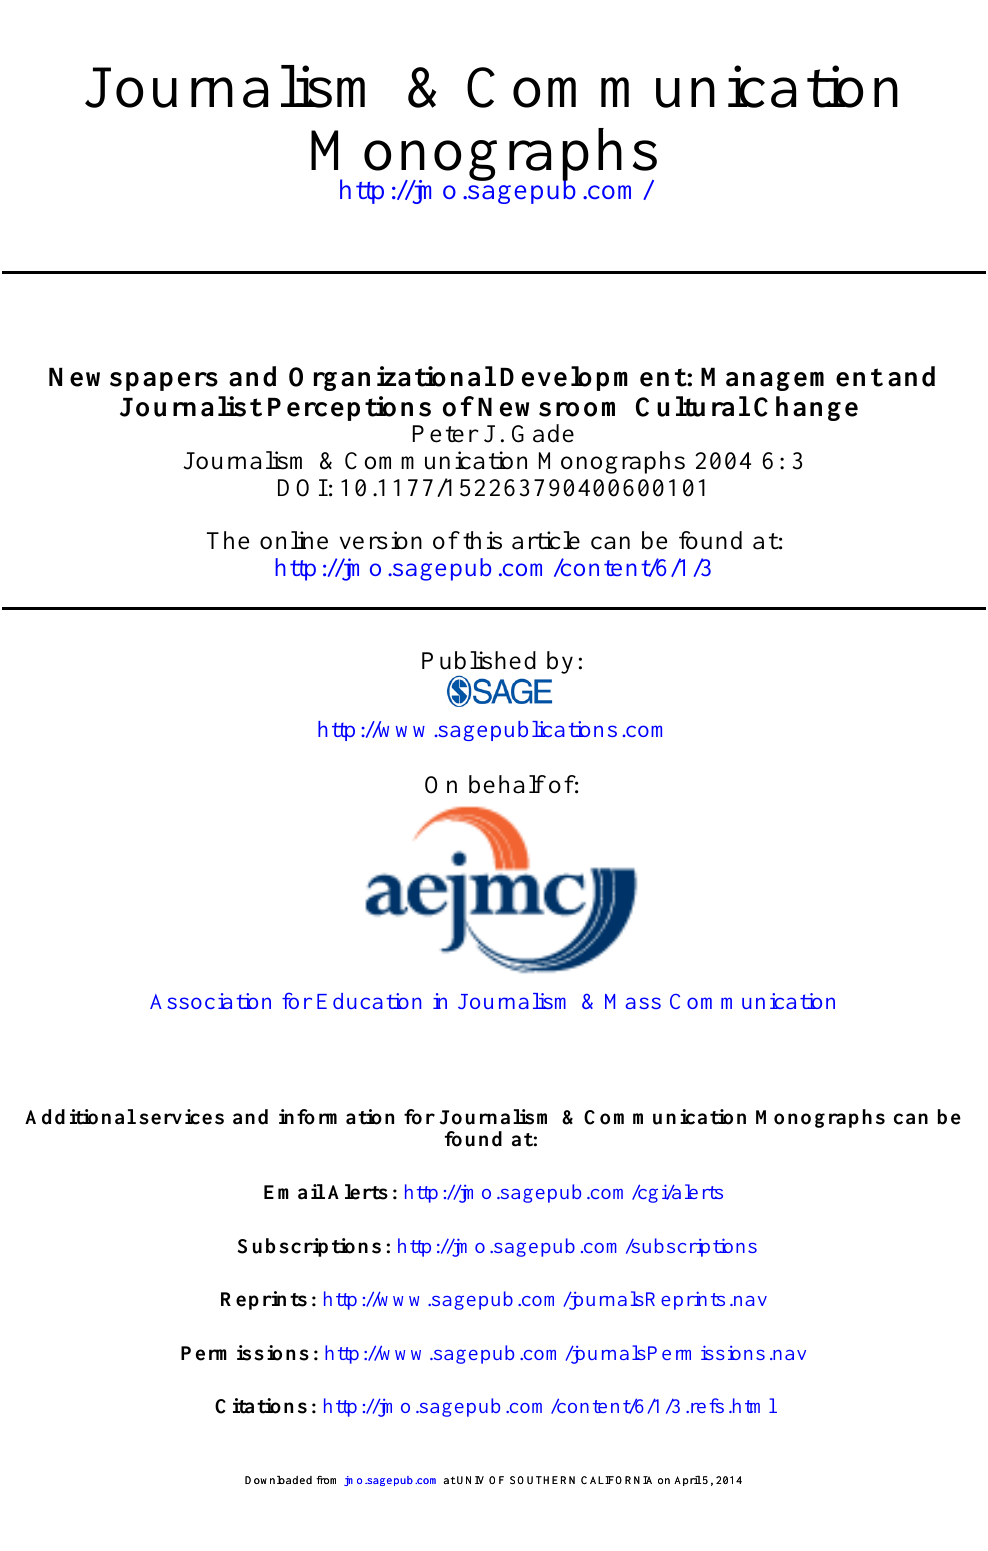 Newspapers and Organizational Development: Management and Journalist